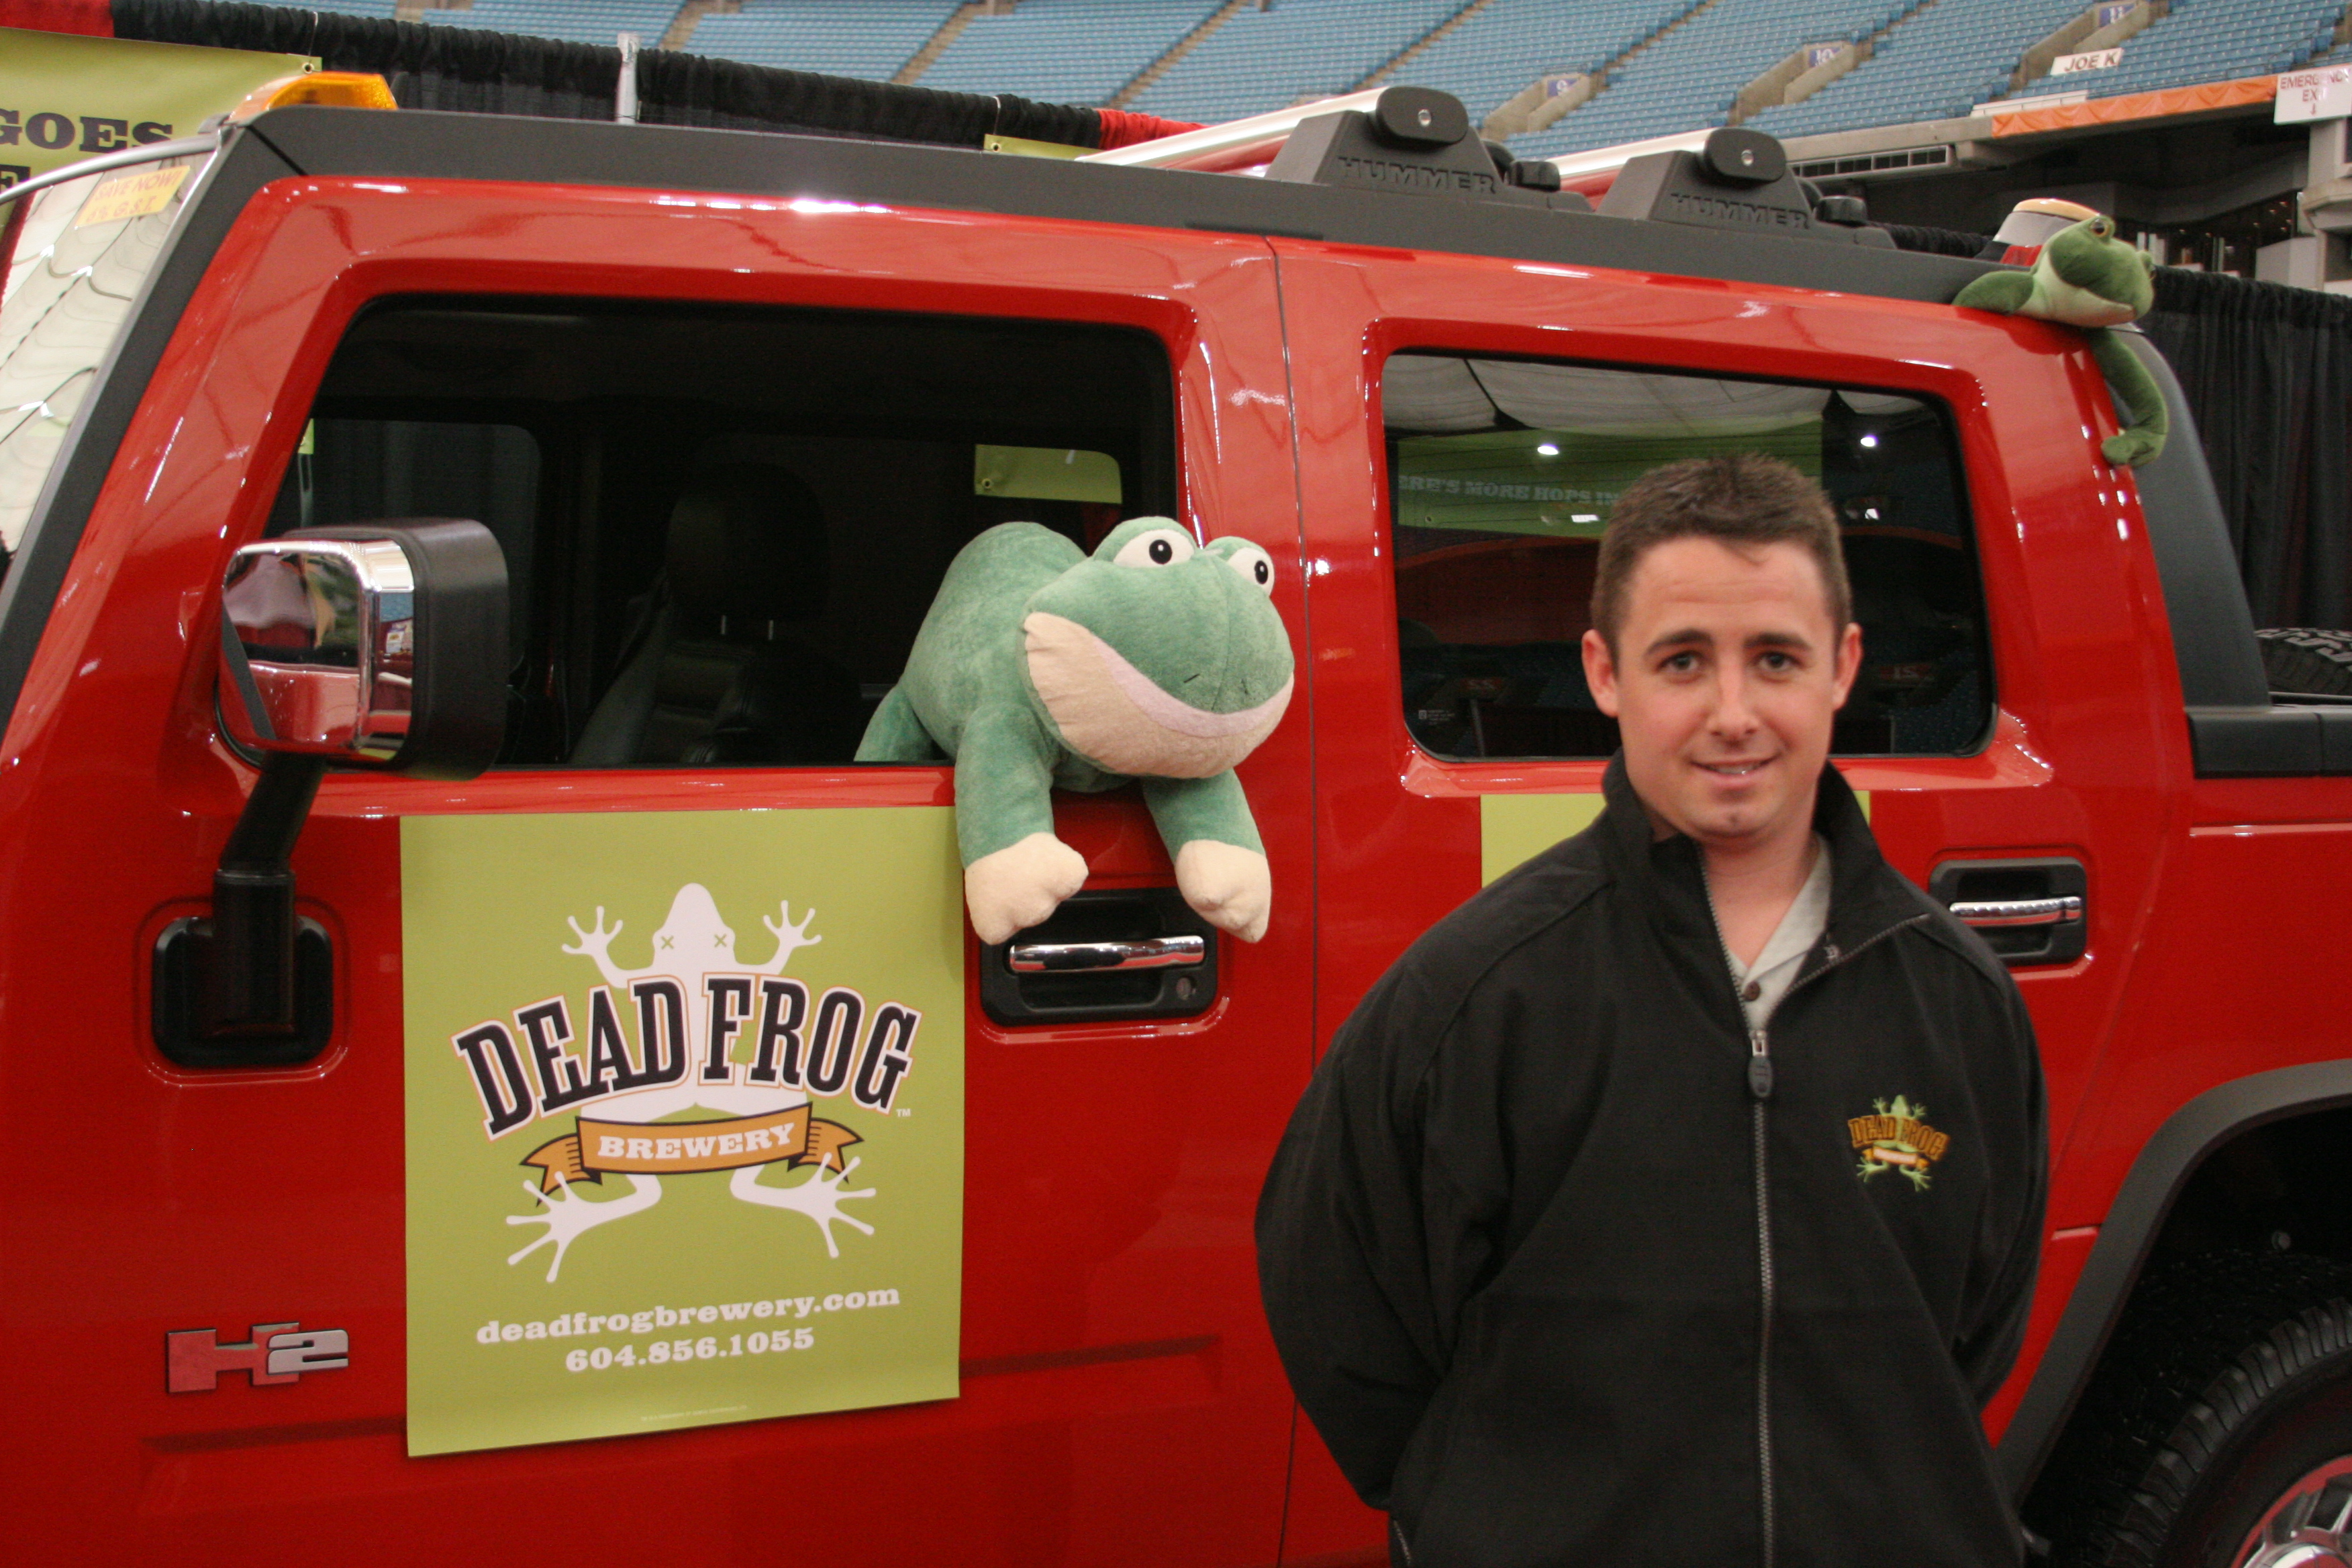 Dead Frog Beer - Eat Vancouver 2006 - 2, 20d, Beer, Canon20d, Canoneos20d, HQ Photo